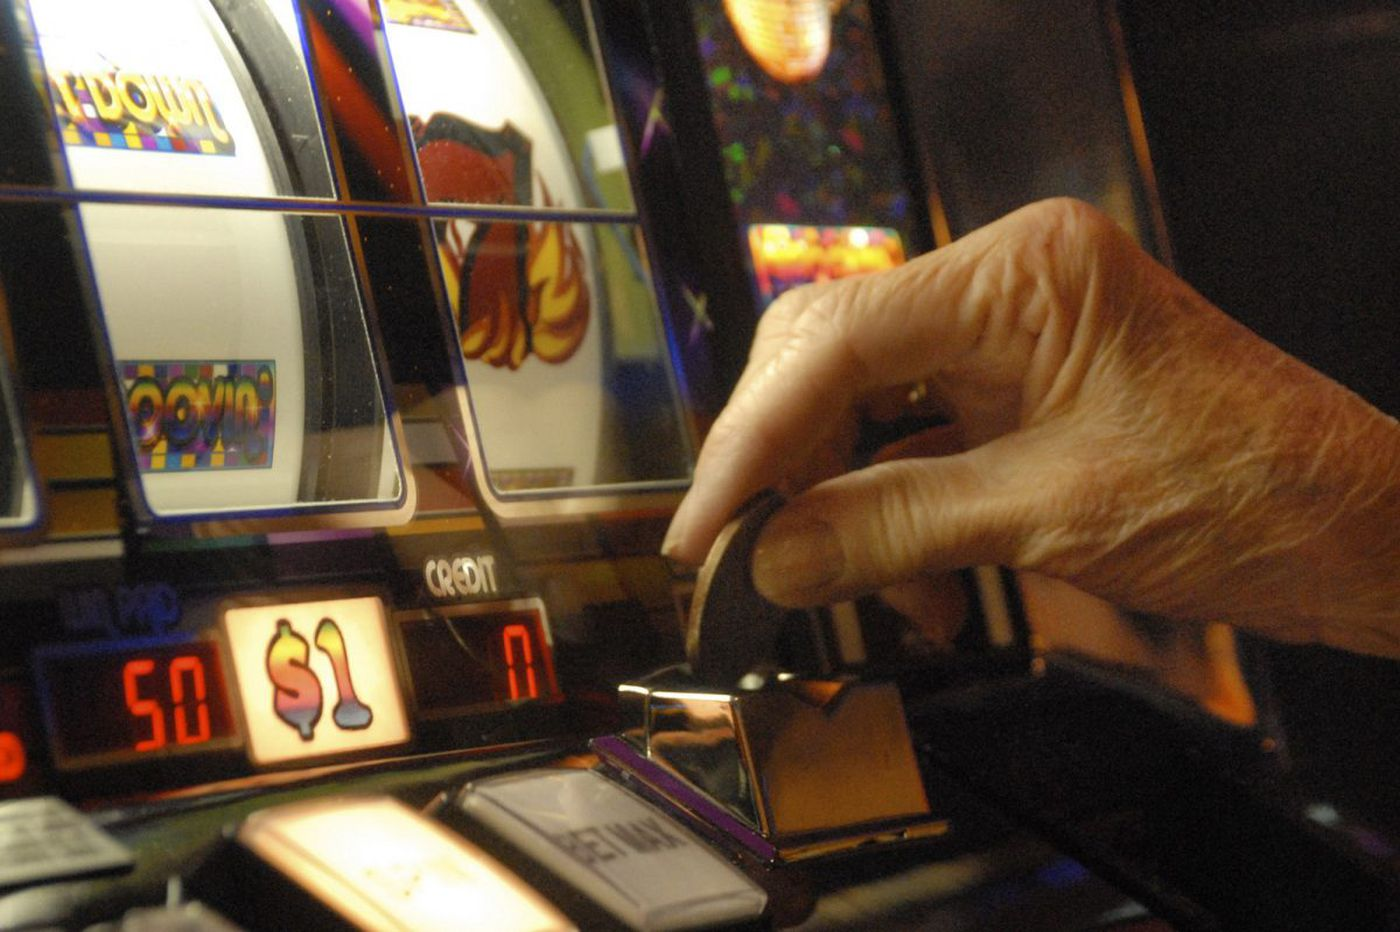 Developers of South Philly casino get second license for smaller gambling spot in Western Pa.